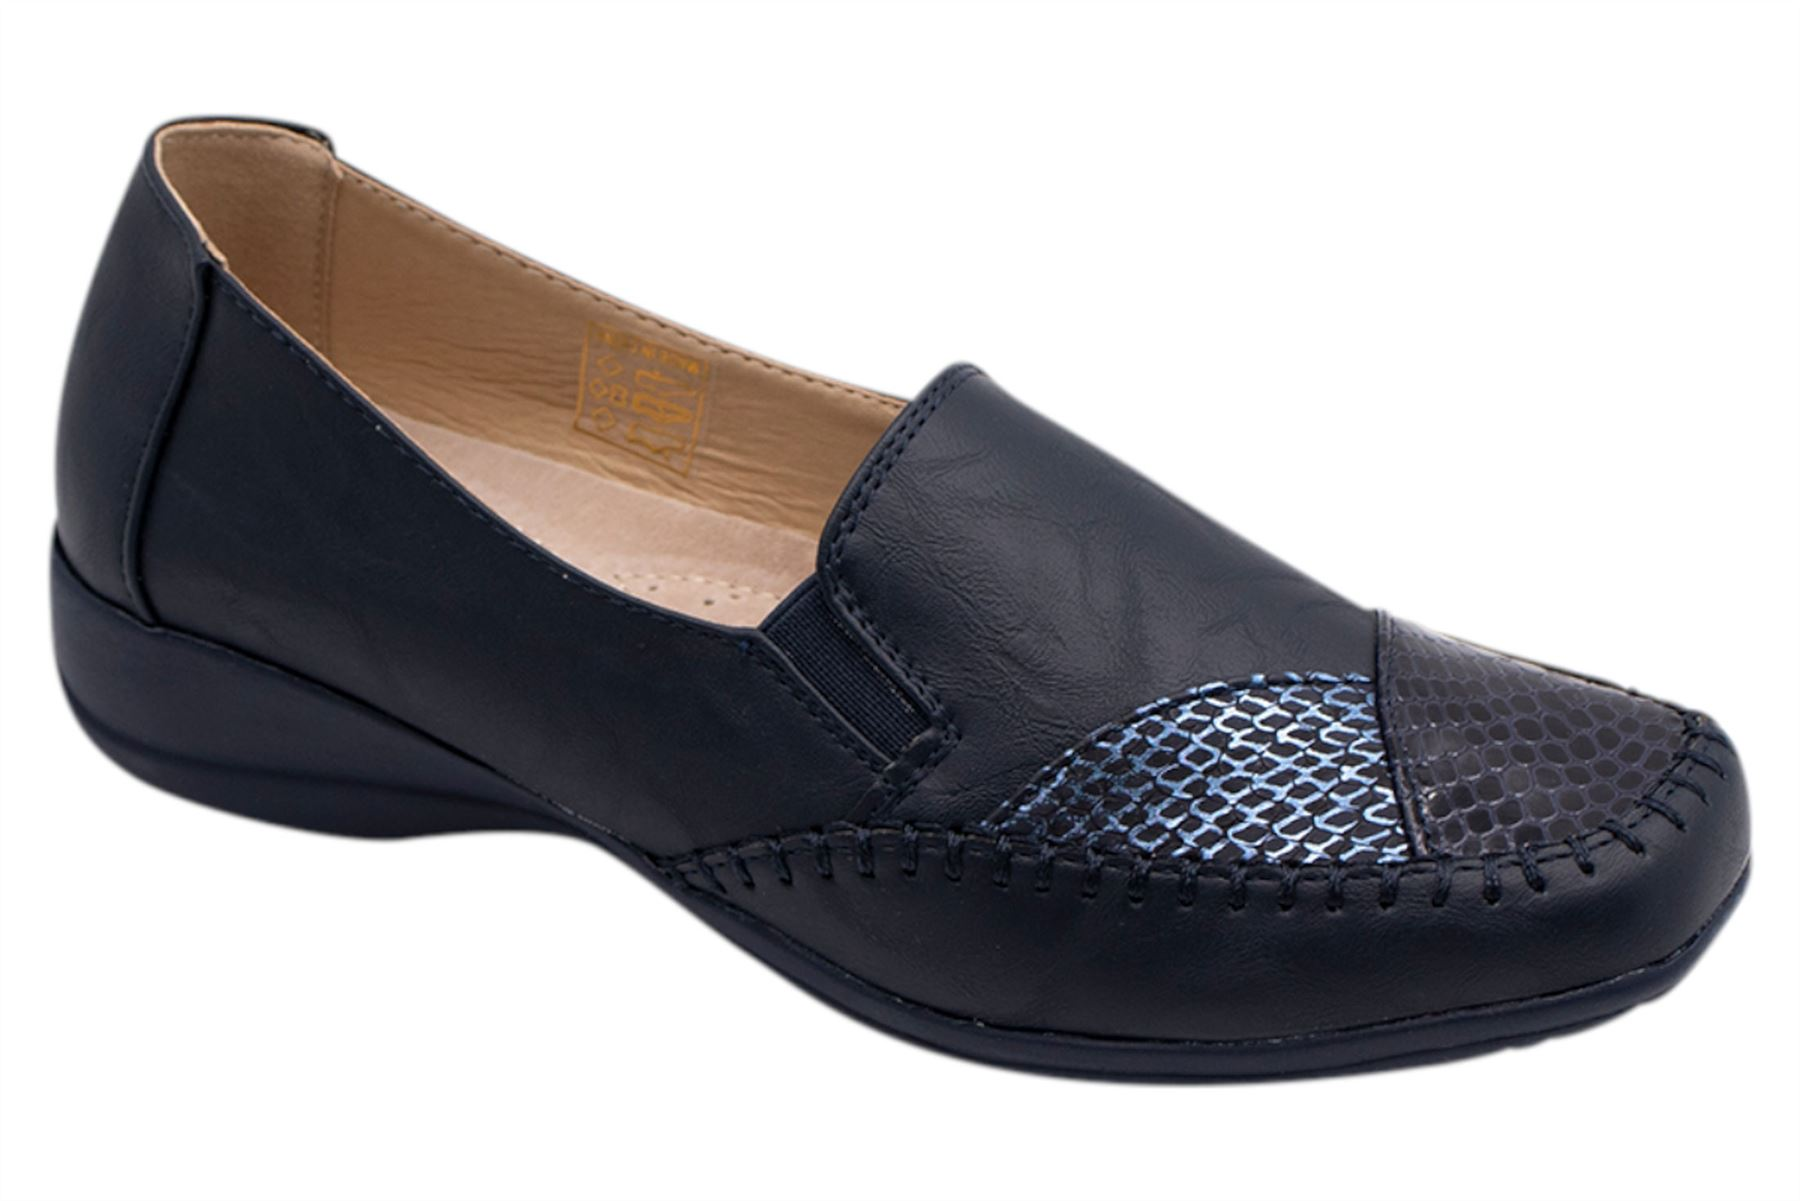 Womens-Flat-Shoes-Ladies-Pumps-Office-Work-Casual-Slip-On-Loafer-Size thumbnail 18